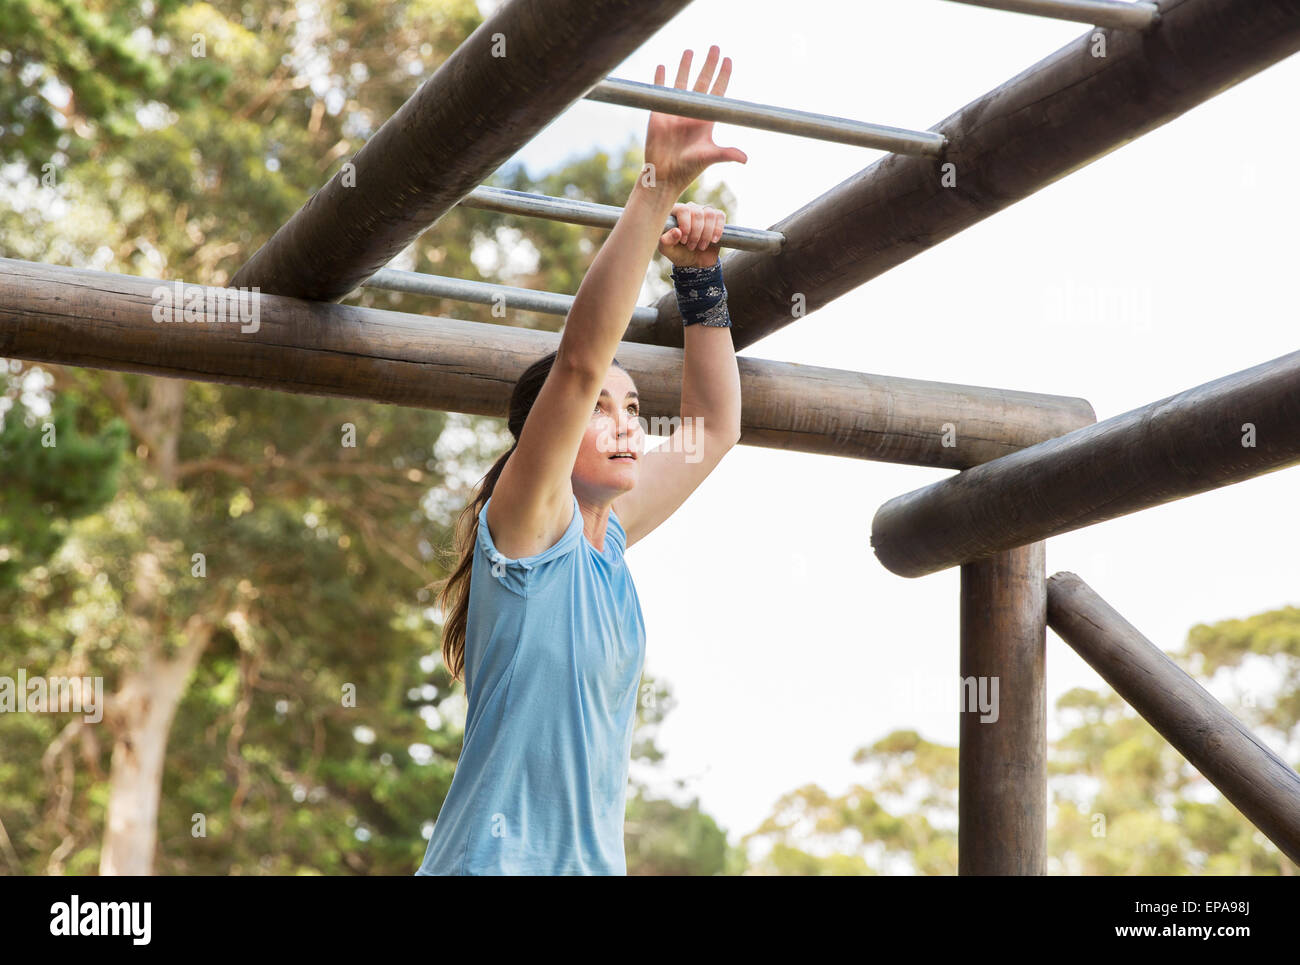 Klettergerüst Monkey Bar : Monkey bars stockfotos & bilder alamy